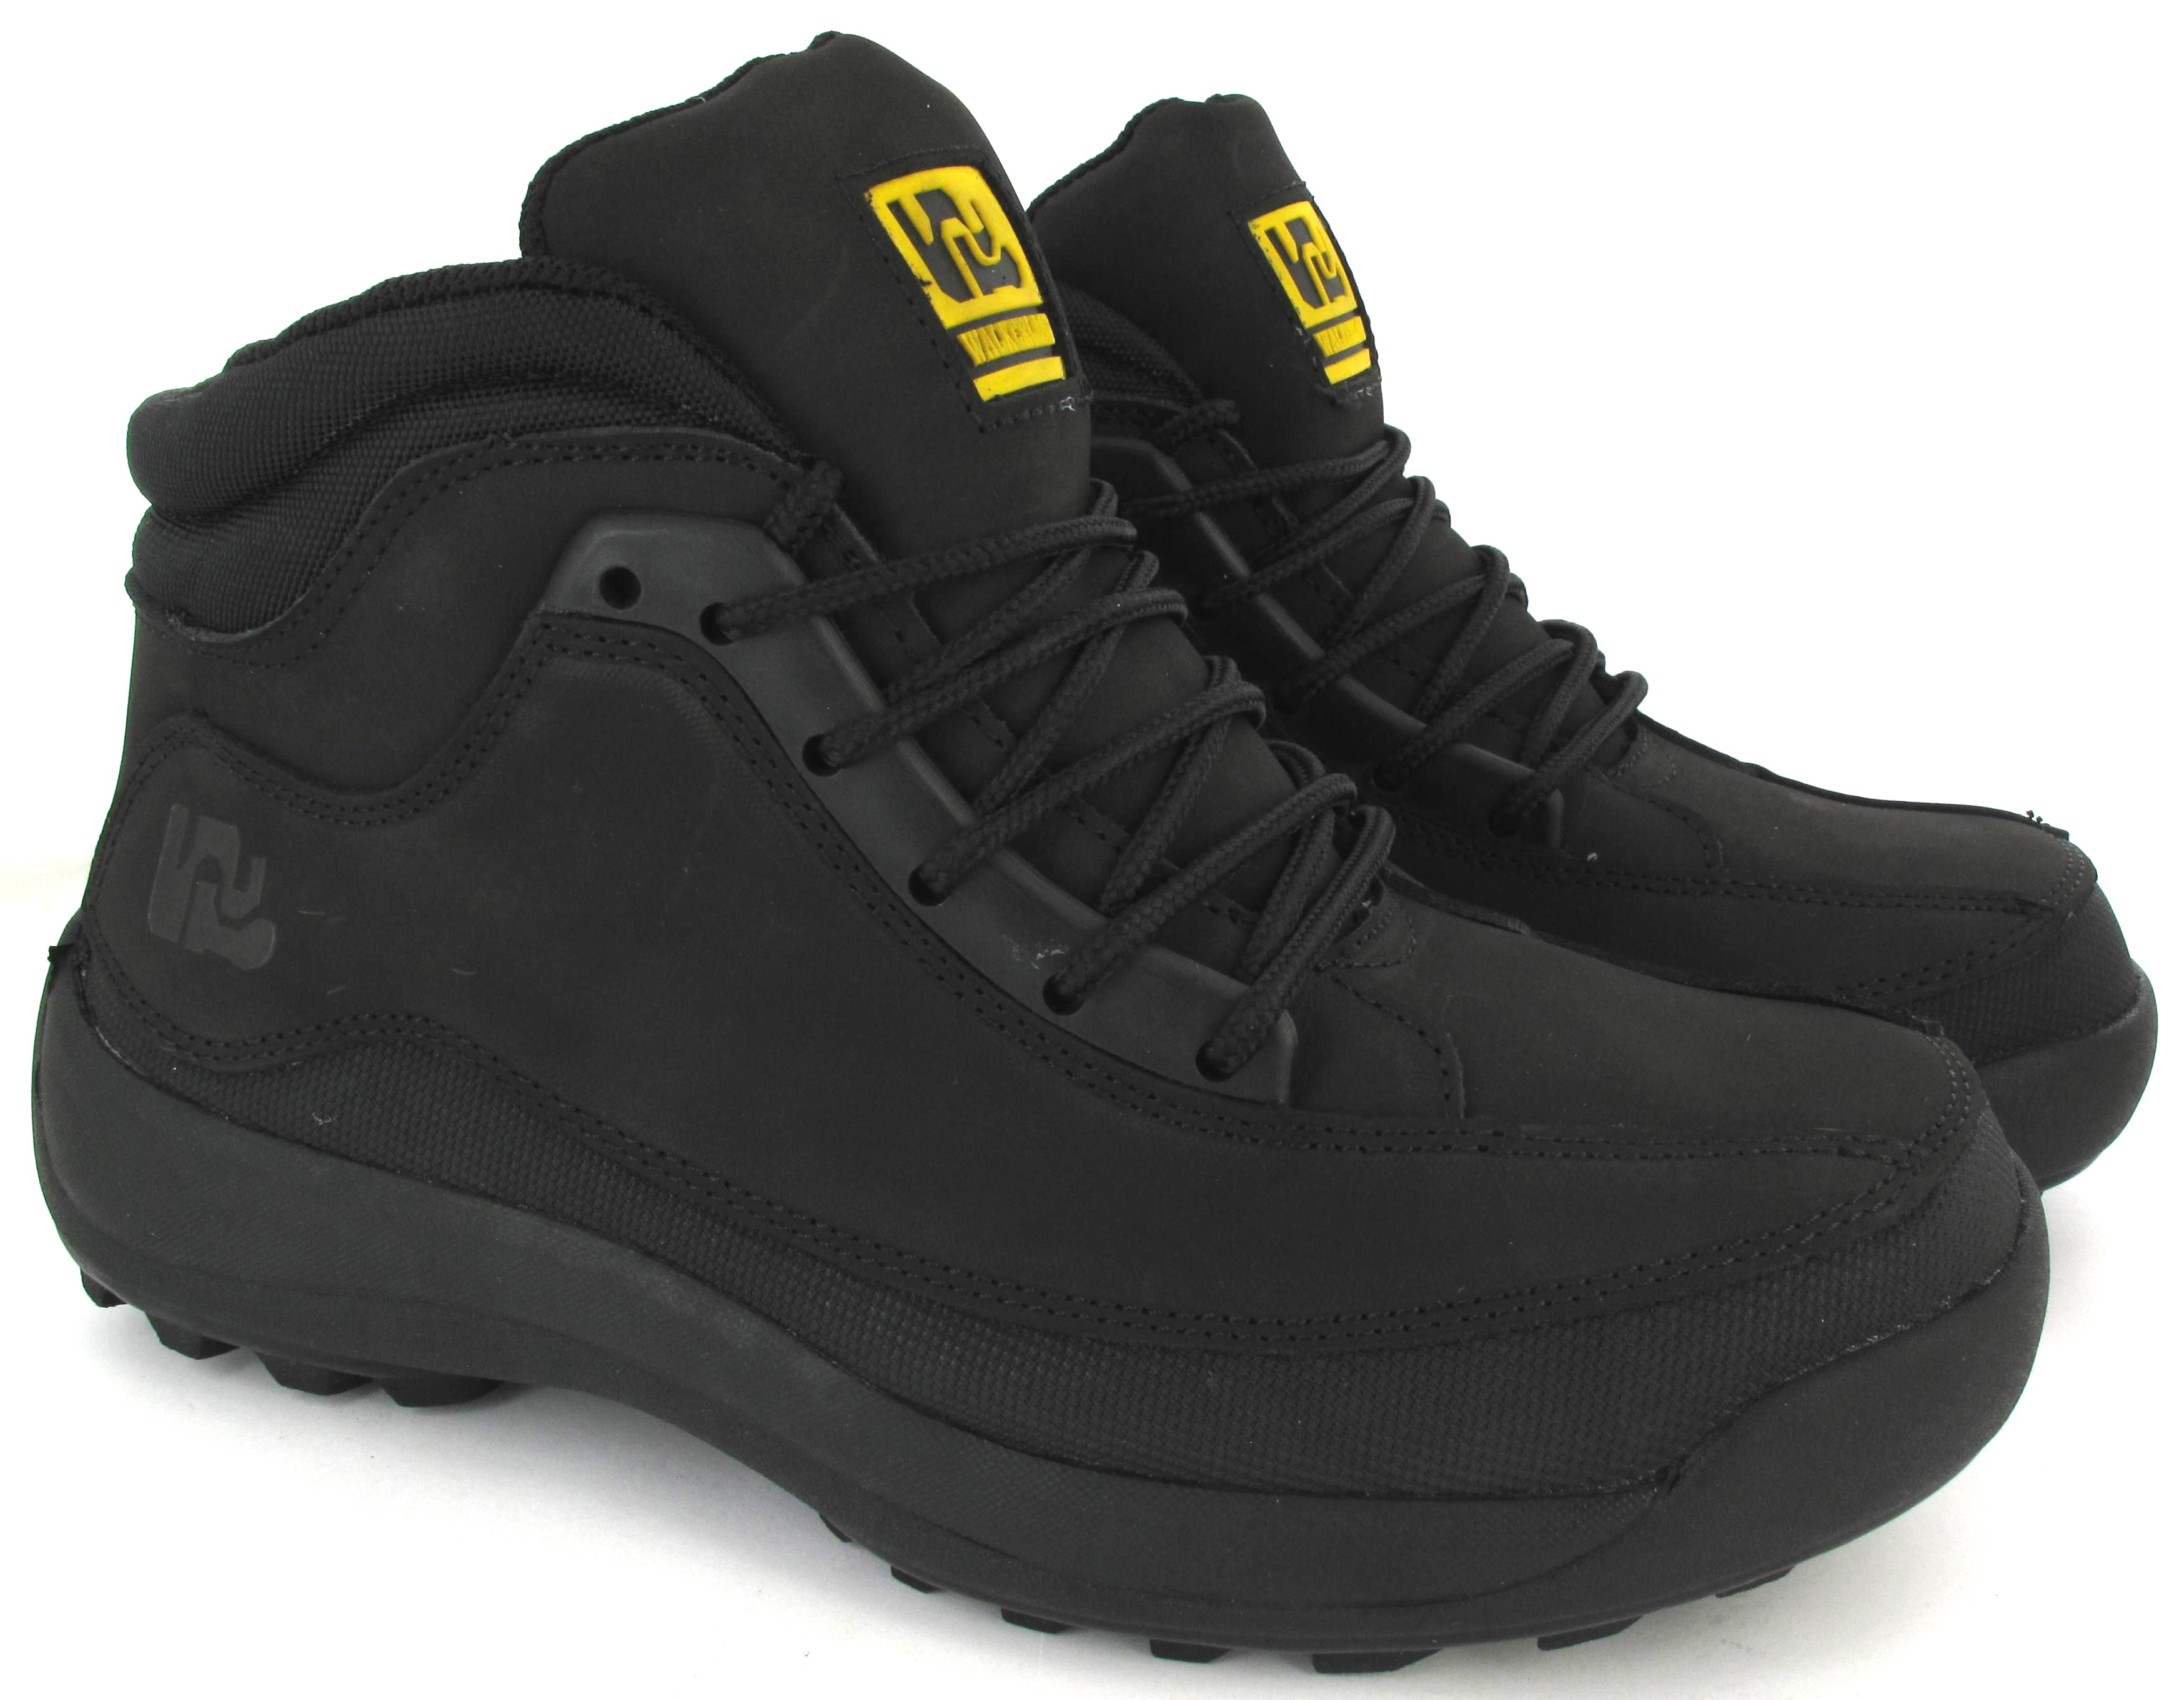 NEW-MENS-LEATHER-SAFETY-BOOTS-TRAINERS-STEEL-TOE-CAP-ANKLE-WORK-SHOES-SIZE-3-13